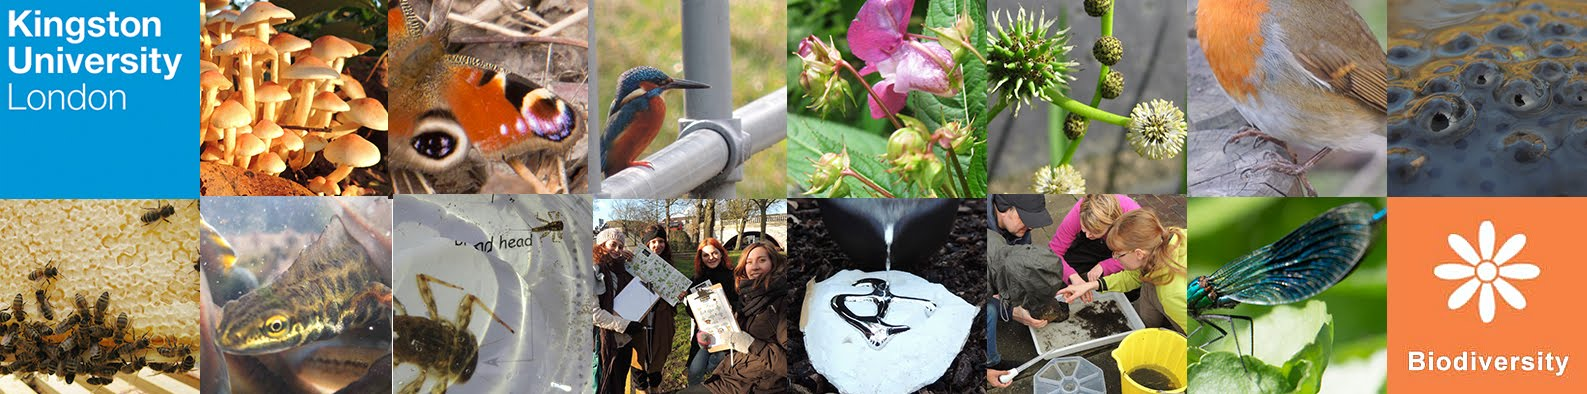 Kingston University Biodiversity Action Group